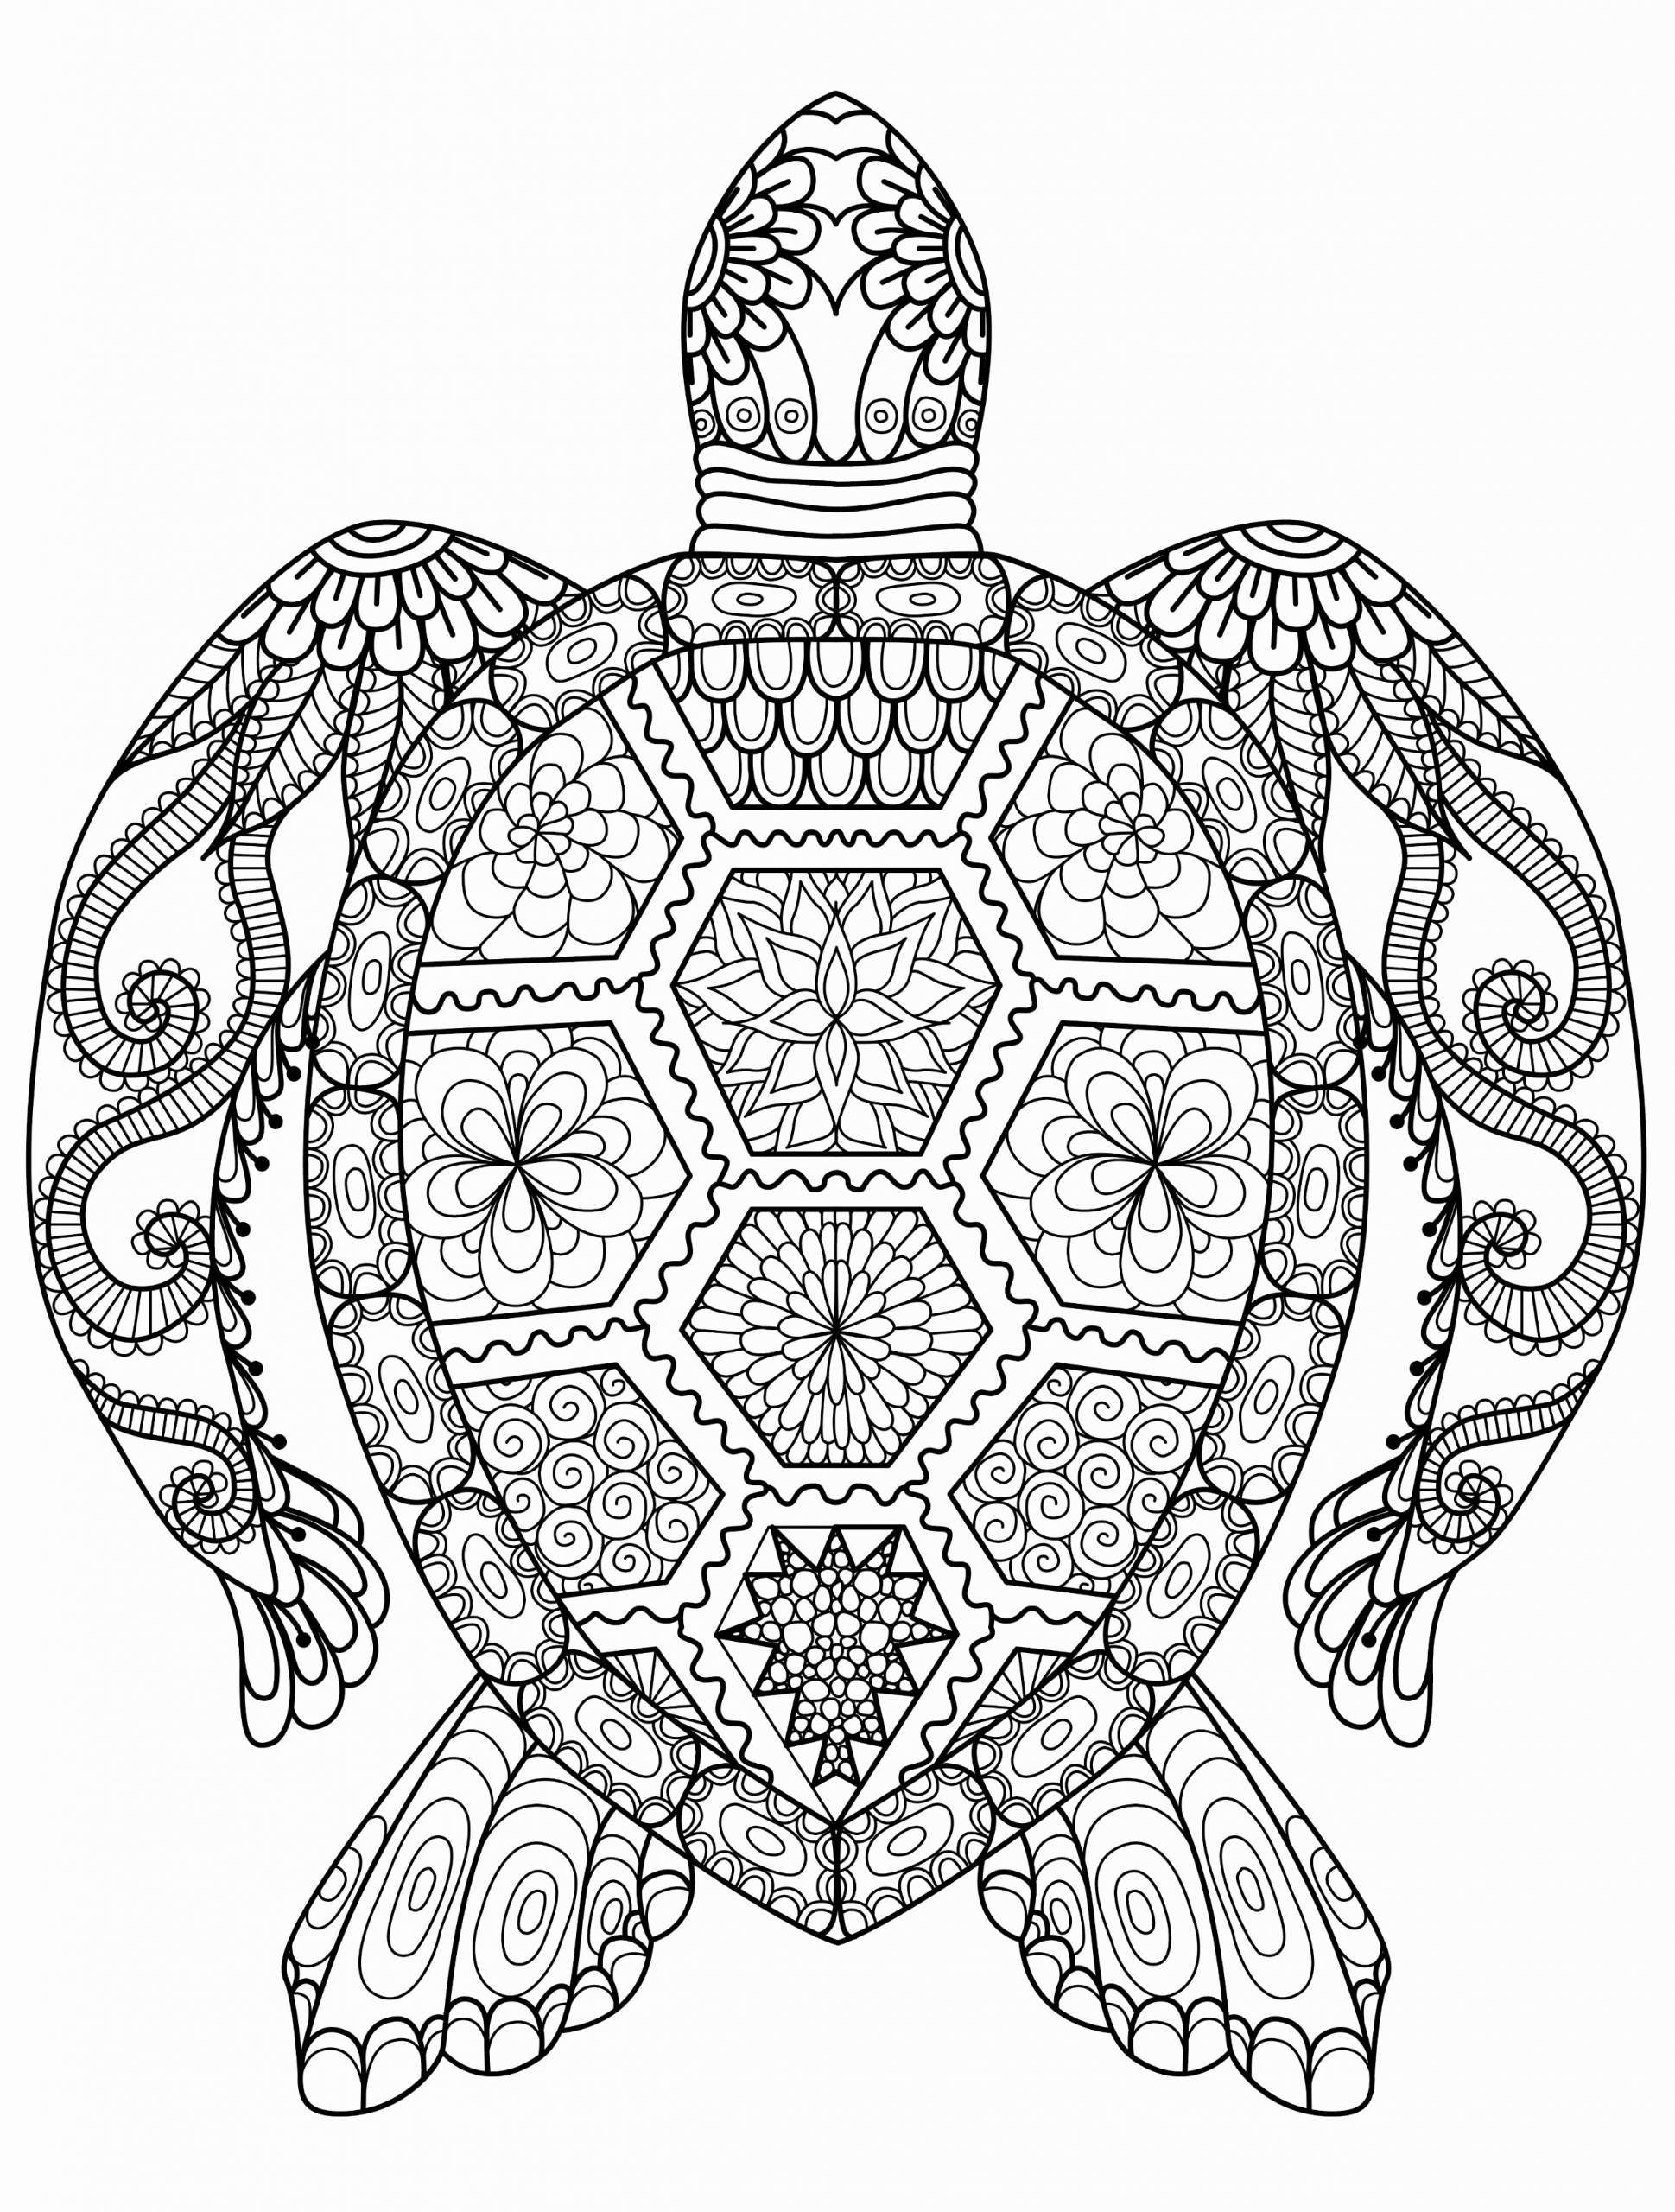 Hard Coloring Pages Of Animals For Kids Turtle Coloring Pages Colouring Sheets For Adults Mandala Coloring Pages